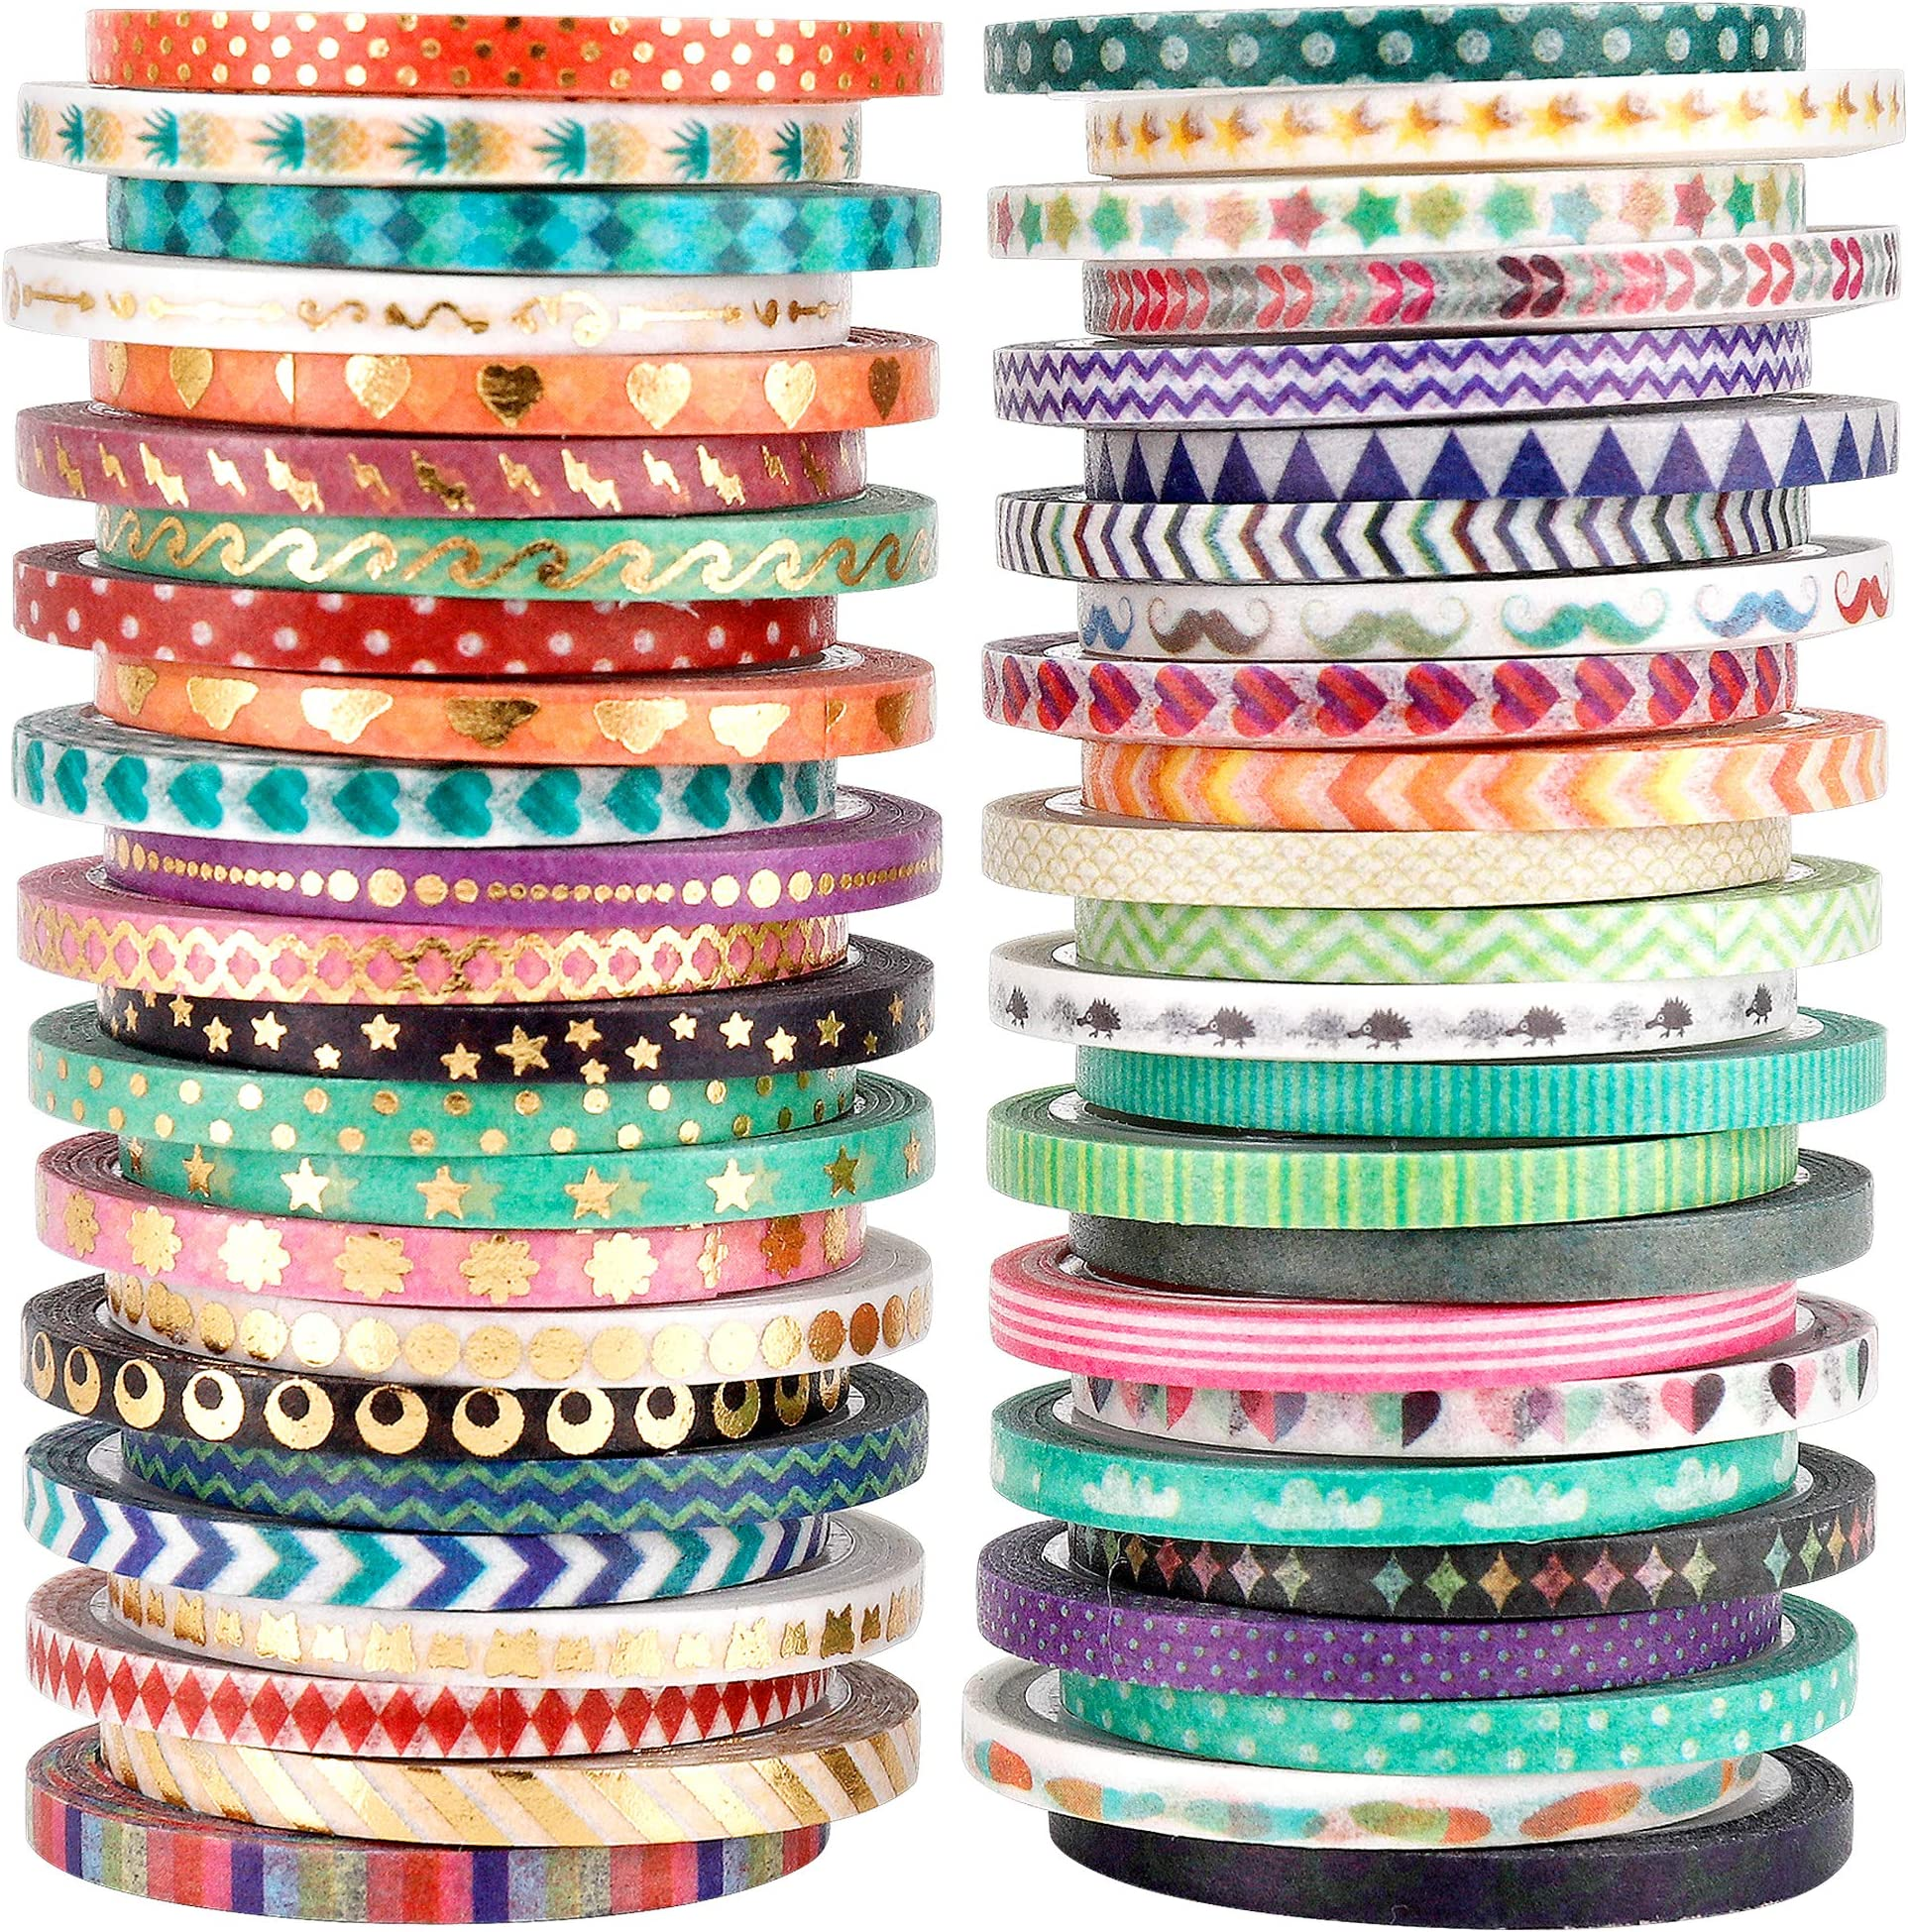 Cute 48 Rolls Washi Tape Set,Foil Gold Thin Decorative Masking Washi Tapes,3MM Wide DIY Paper Tape for DIY Craft Scrapbooking Gift Wrapping Planner